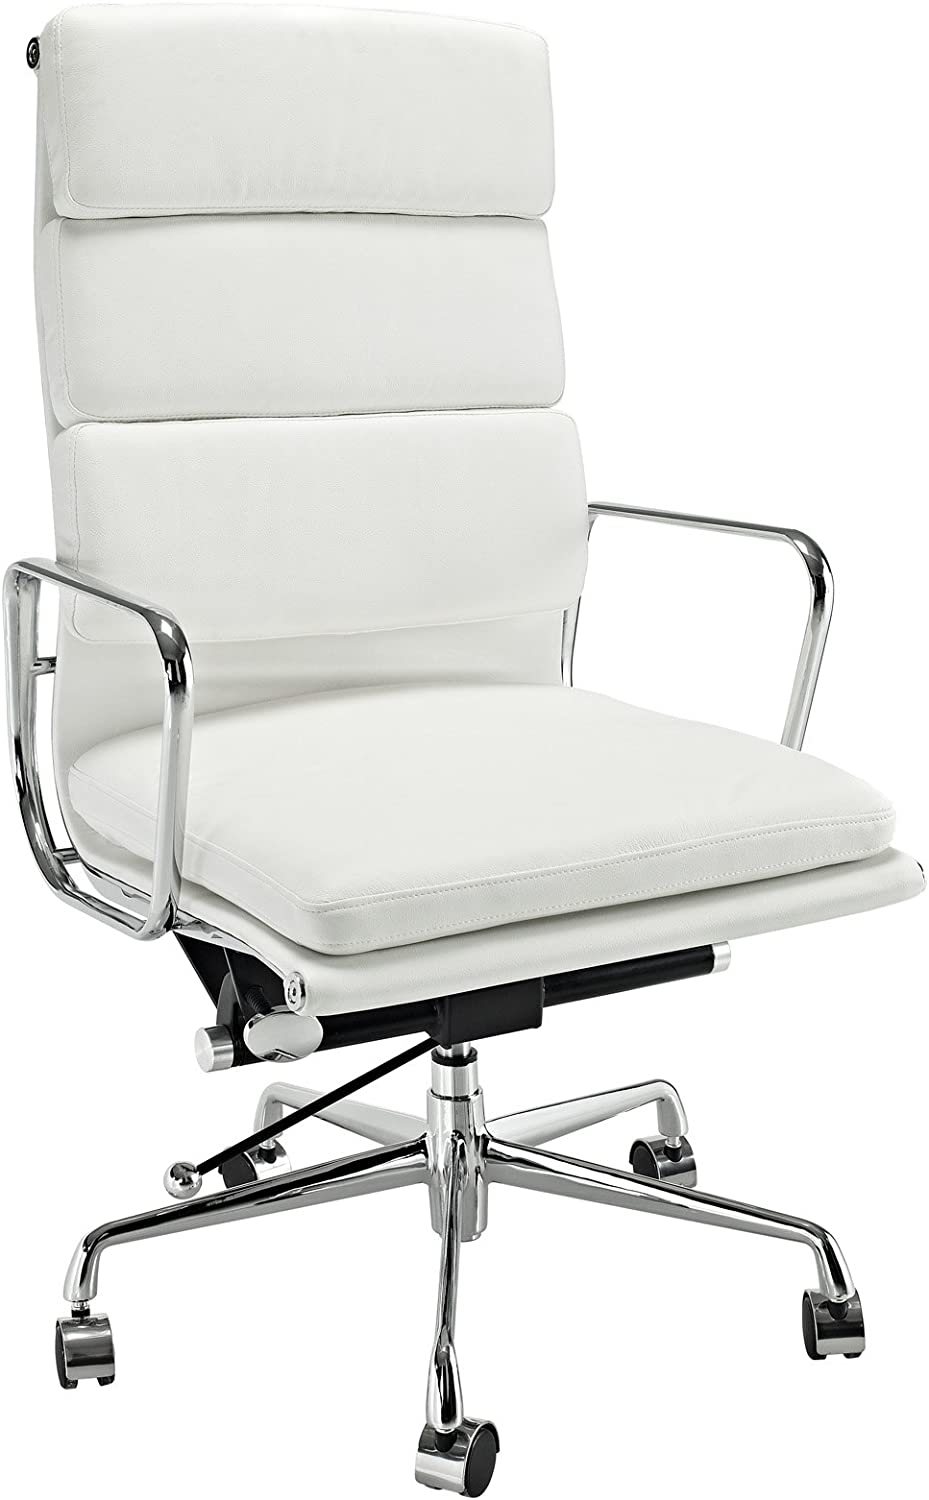 Modway Discovery High Back Leather Conference Office Chair in White Genuine Leather